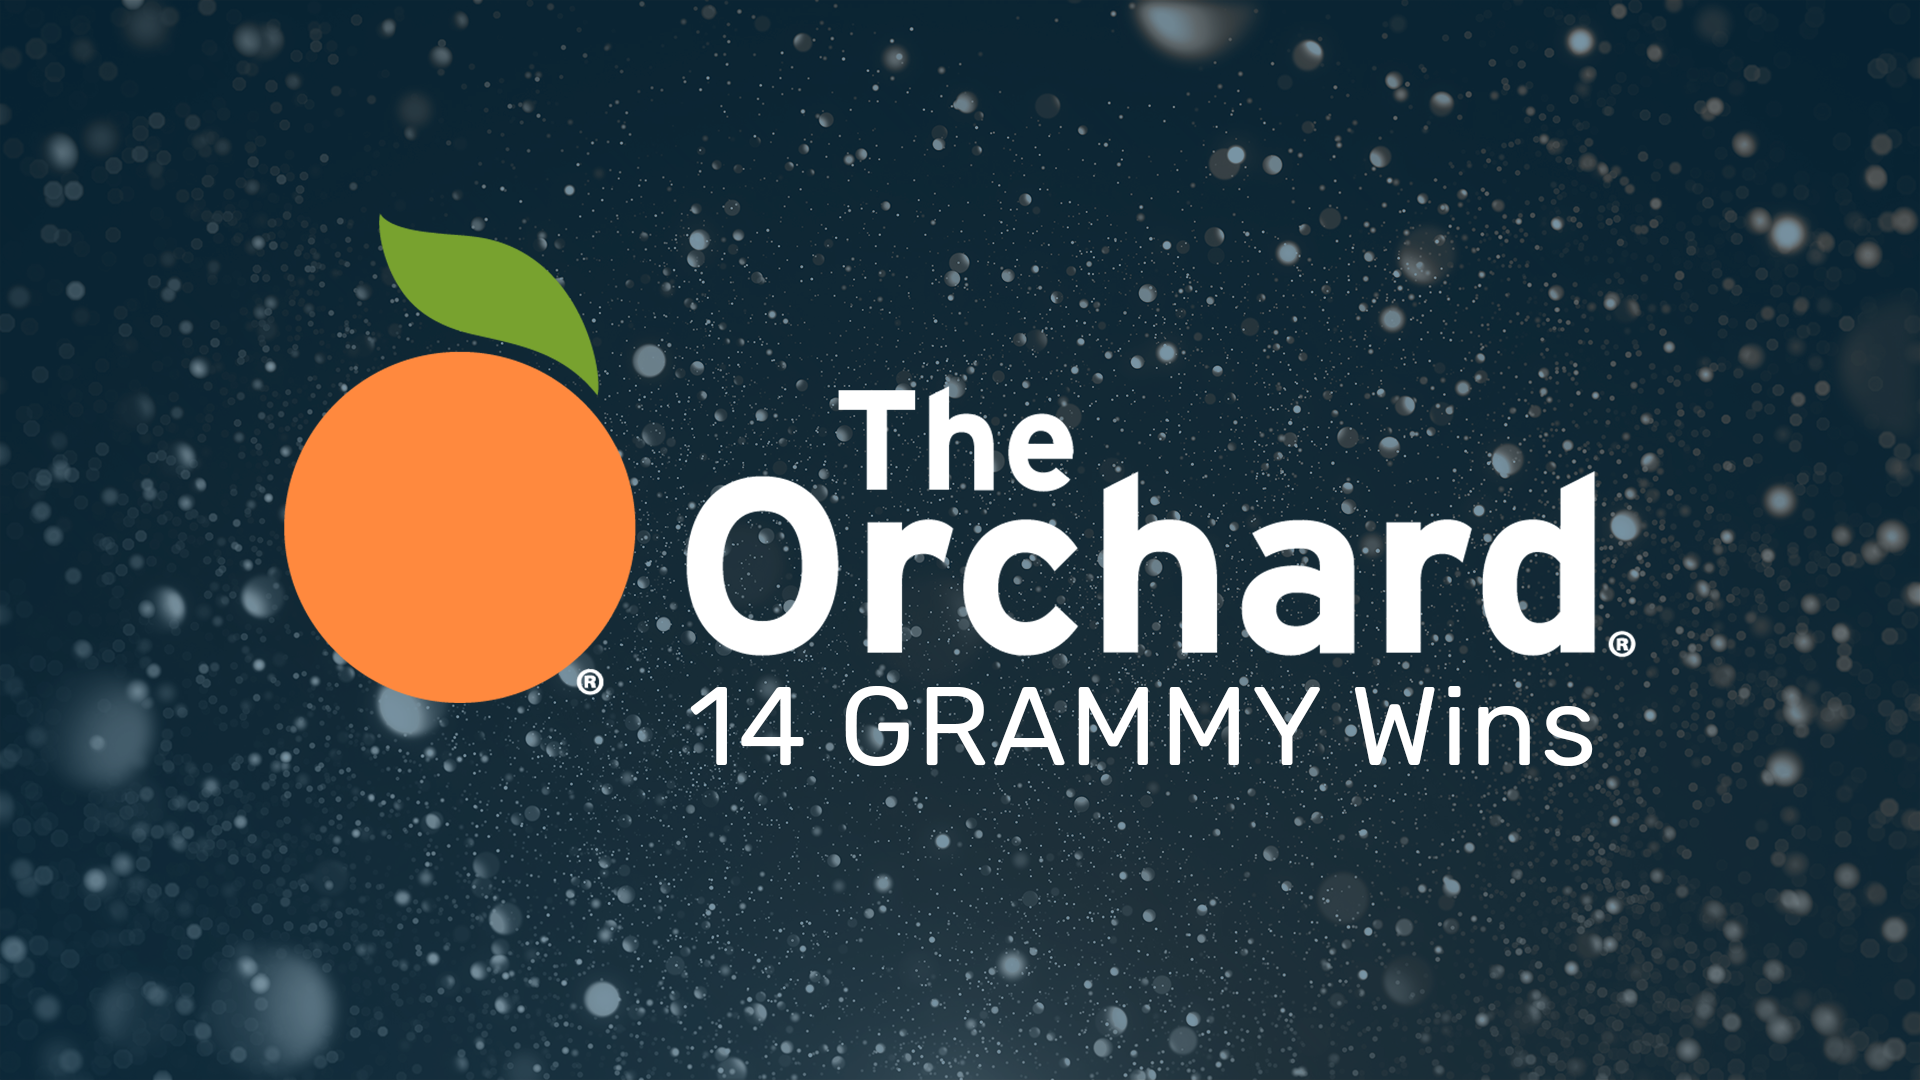 The Orchard's Artists & Labels Earn 14 GRAMMY Awards